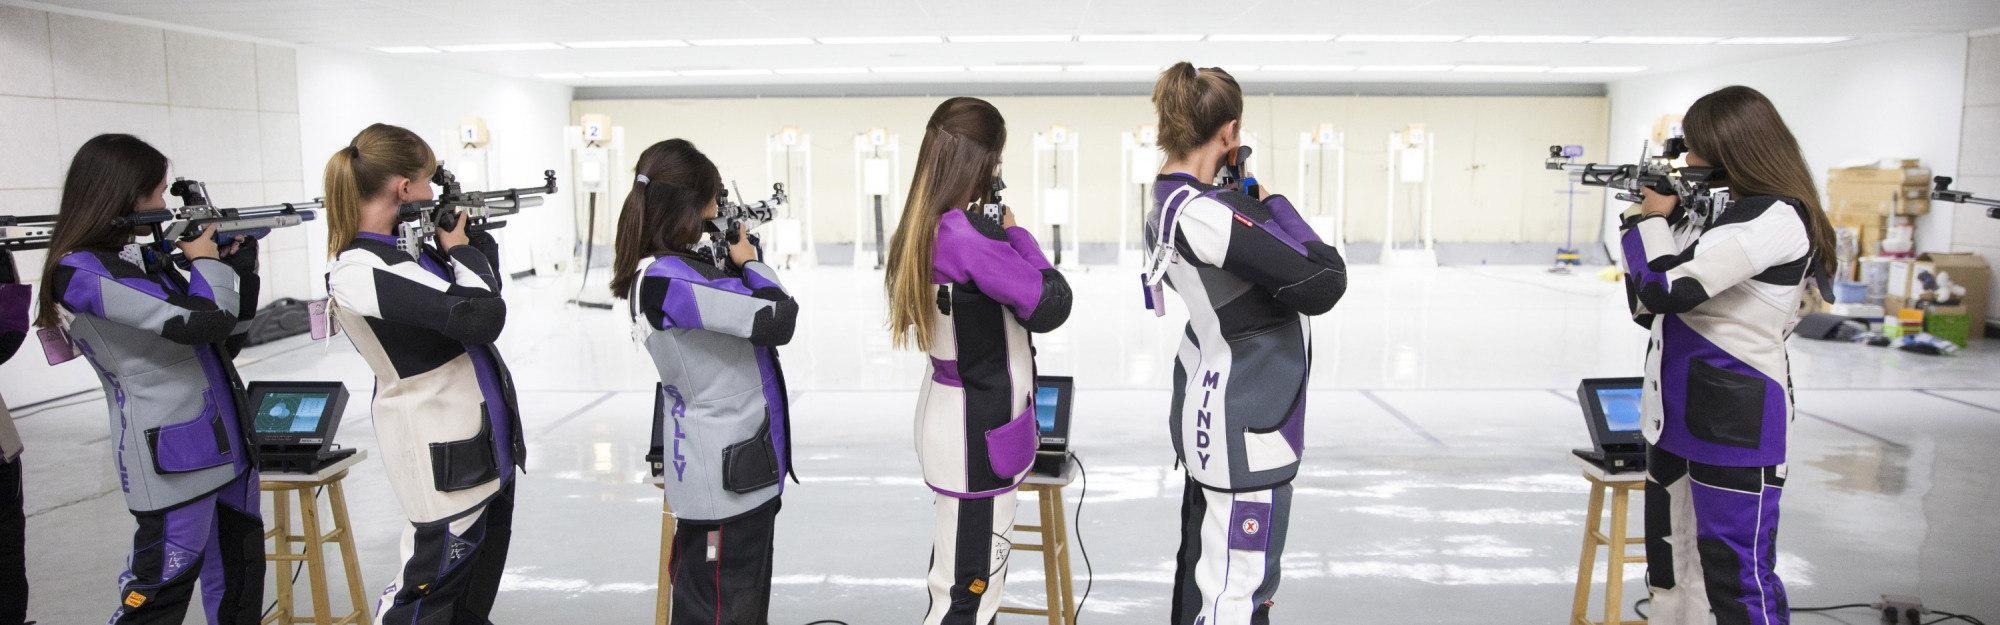 TCU Rifle Team photographed on the Campus of TCU in Fort Worth, Texas on August 28, 2015.